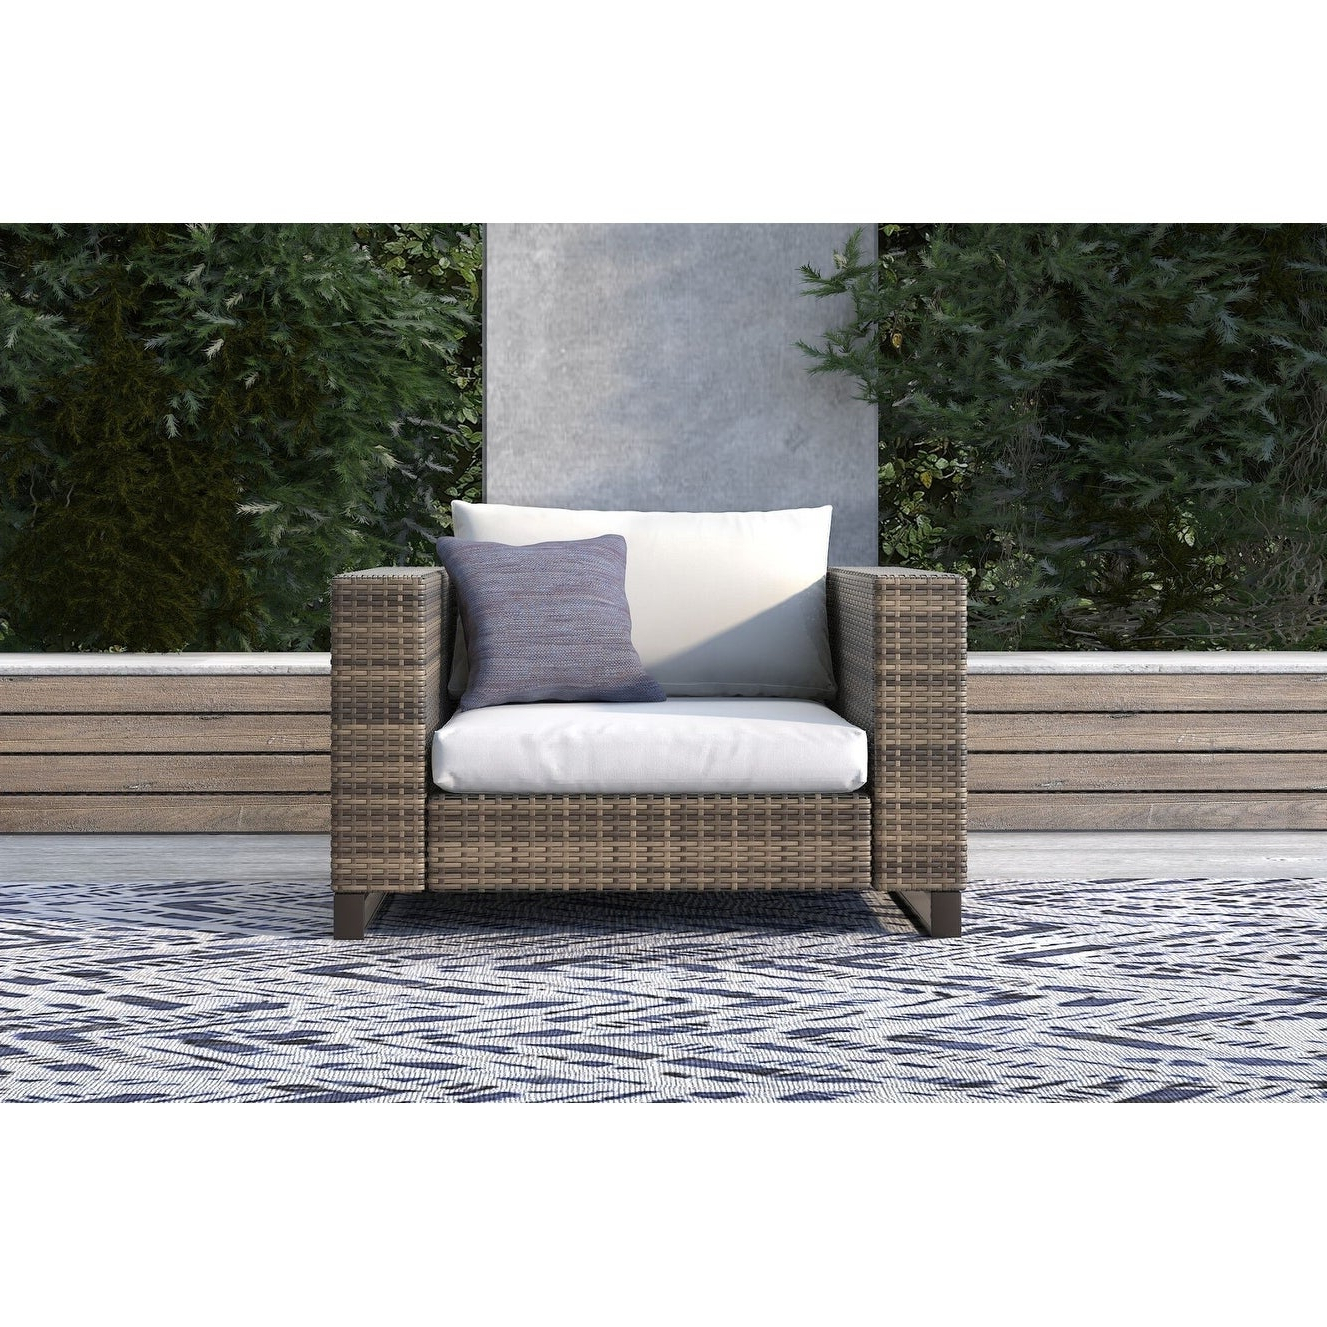 Famous Tommy Hilfiger Oceanside Outdoor Arm Chair, Gray Wicker Regarding Oceanside Outdoor Wicker Loveseats With Cushions (View 3 of 25)